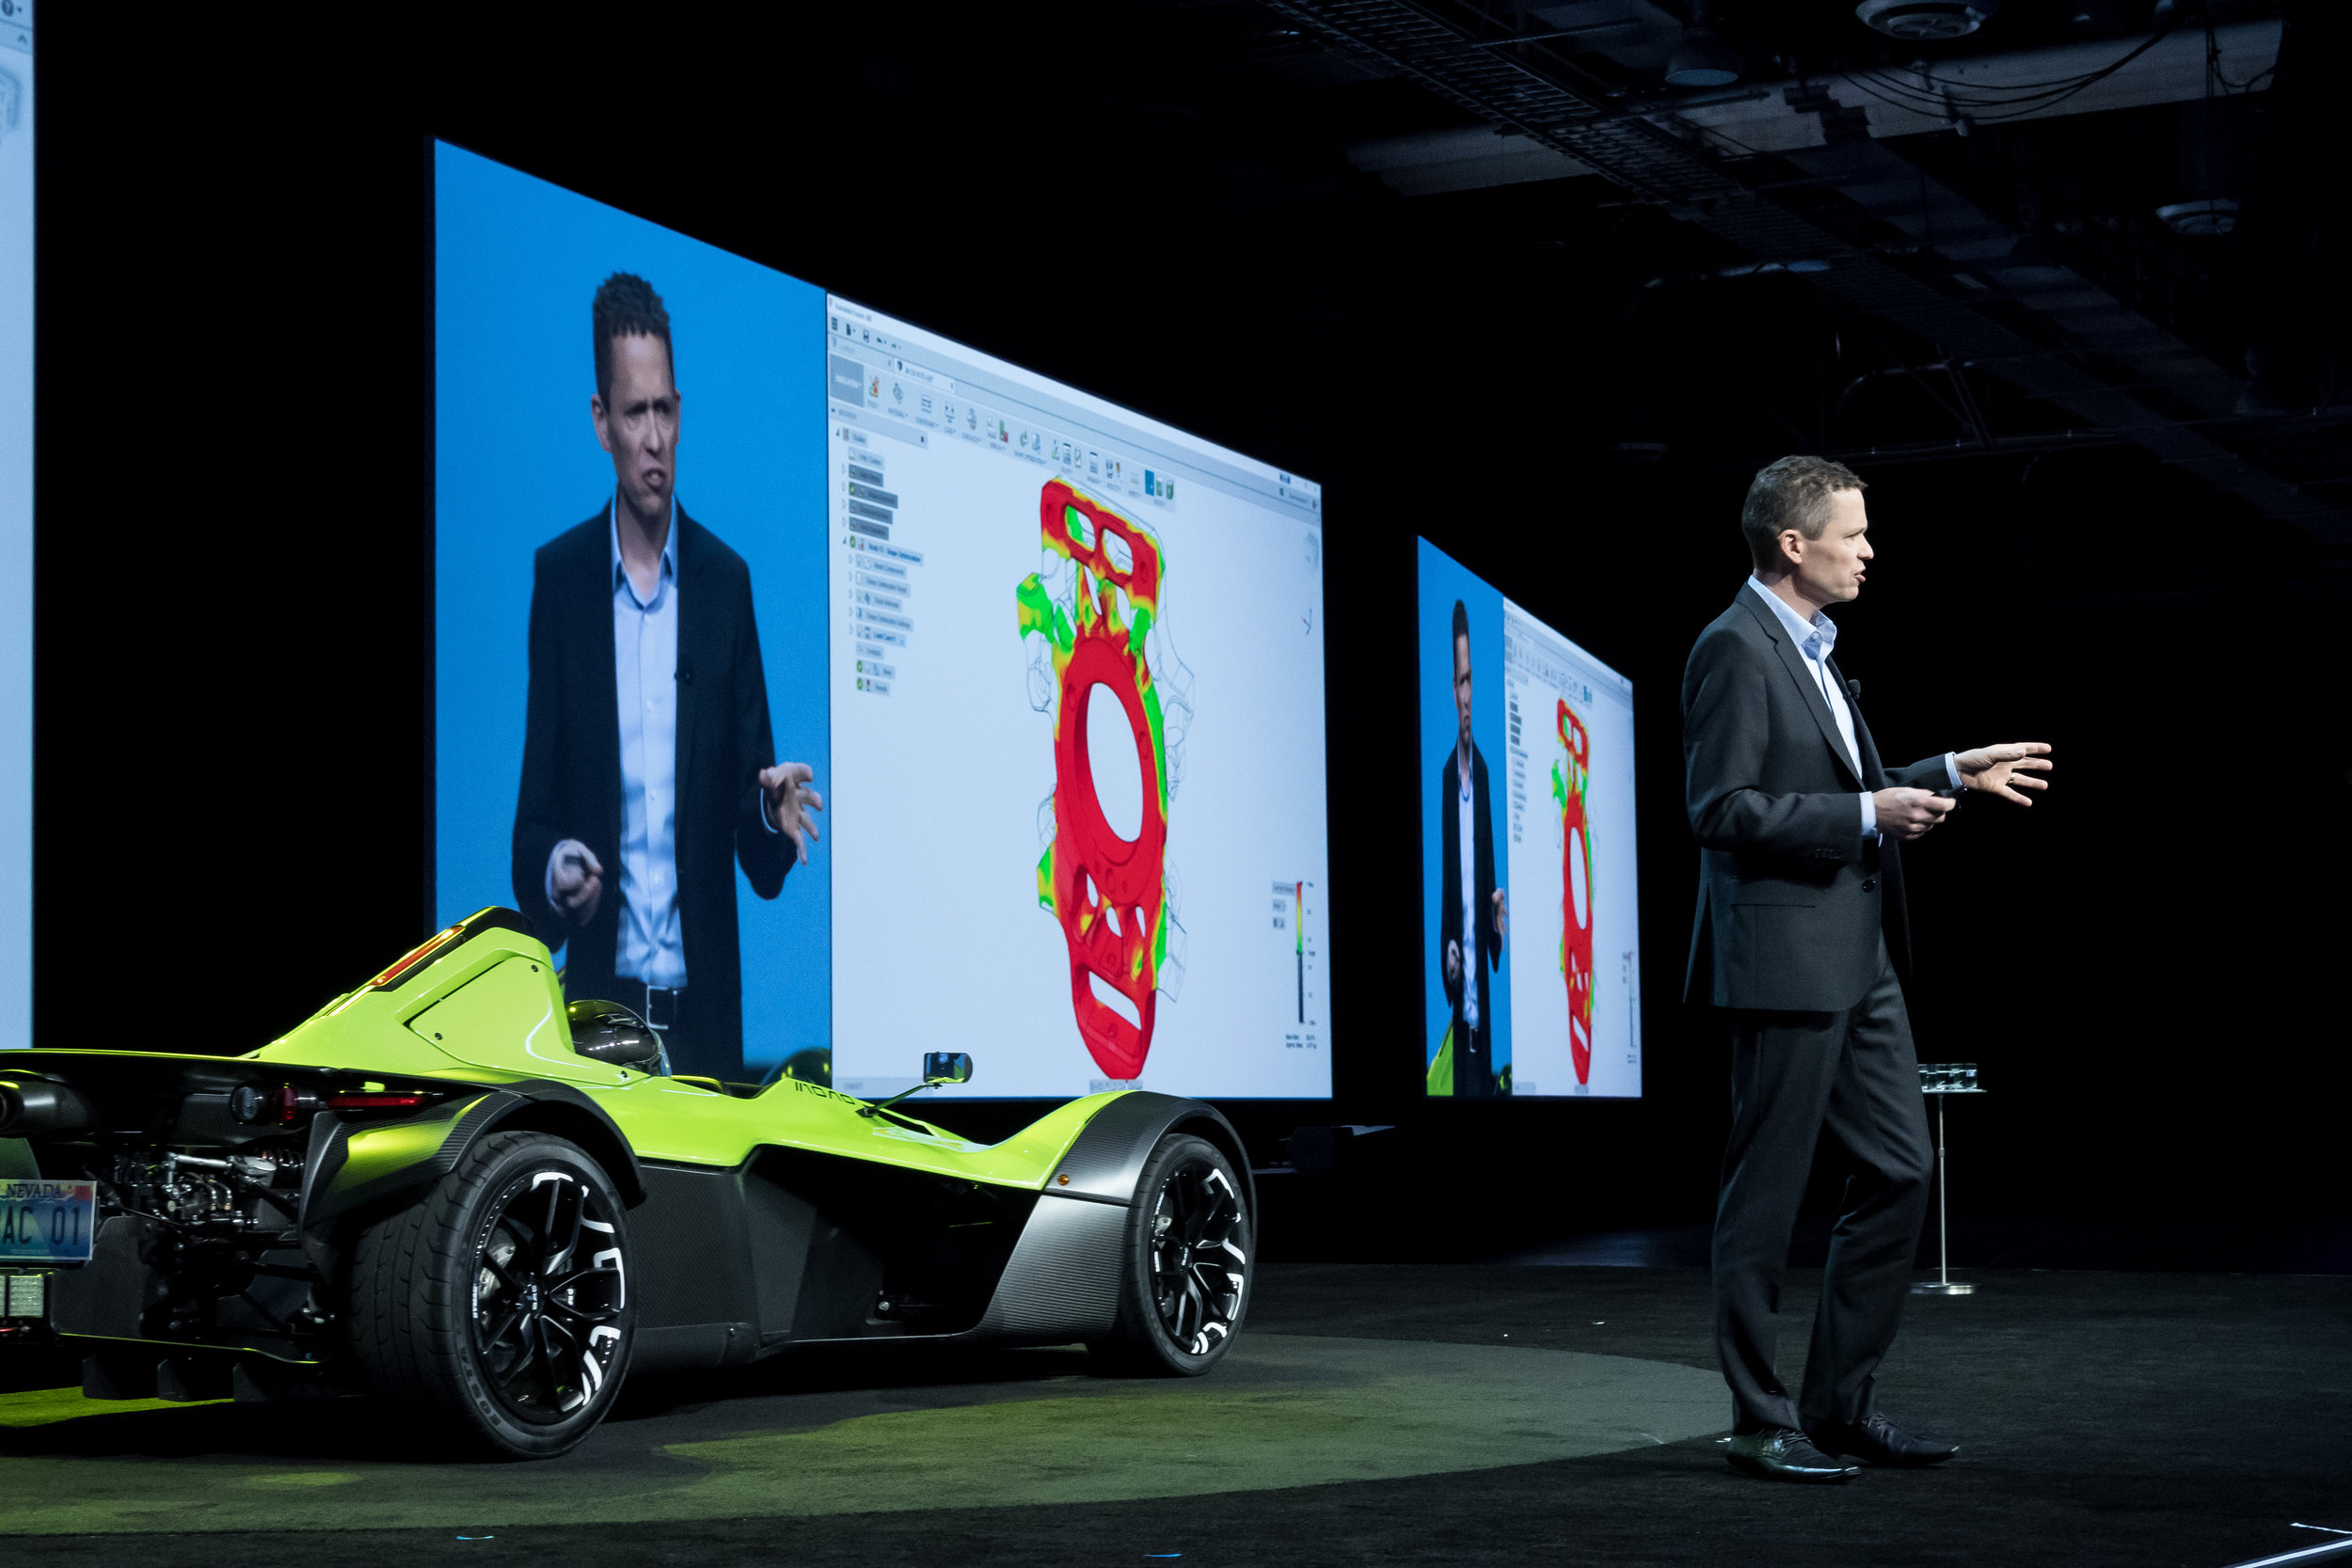 Autodesk Sr. Director & Bay Area Executive Speaking & Coaching program client, Steve Hopper on stage in front of 10,000 attendees at Autodesk University 2016.